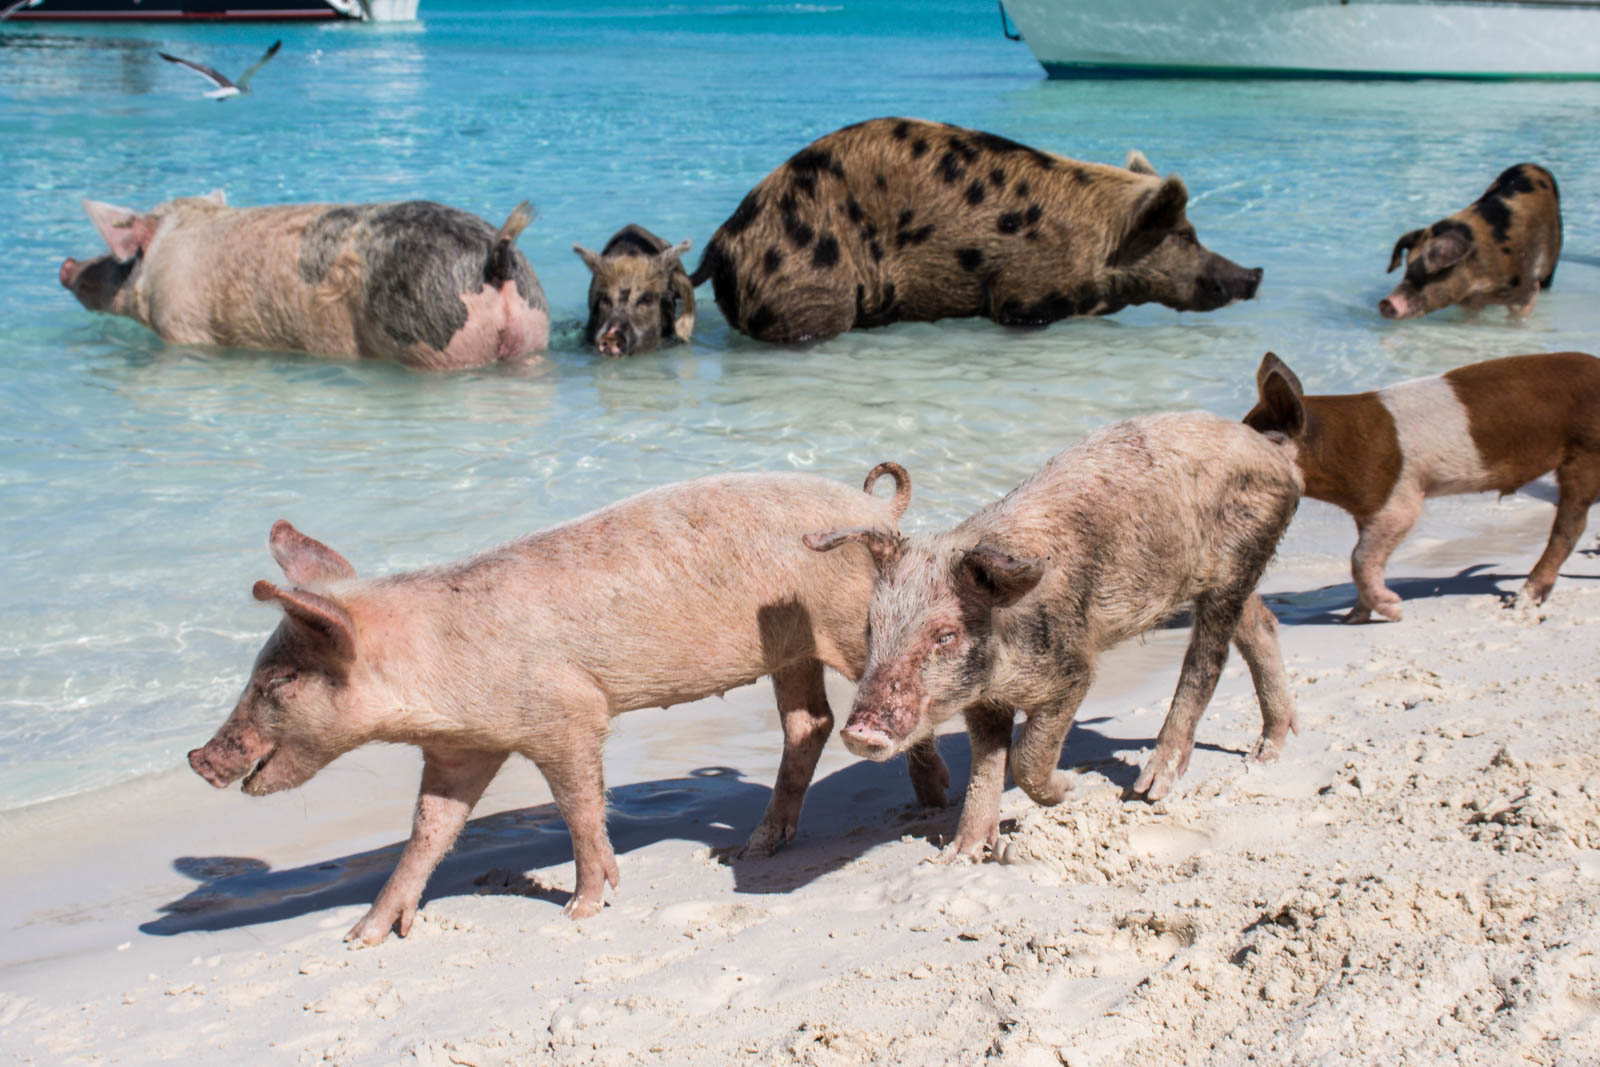 Day trips to Bahamas swimming pigs are popular Nassau Bahamas shore excursions for cruisers. Nassau tours to Pig Beach are popular with groups and couples.